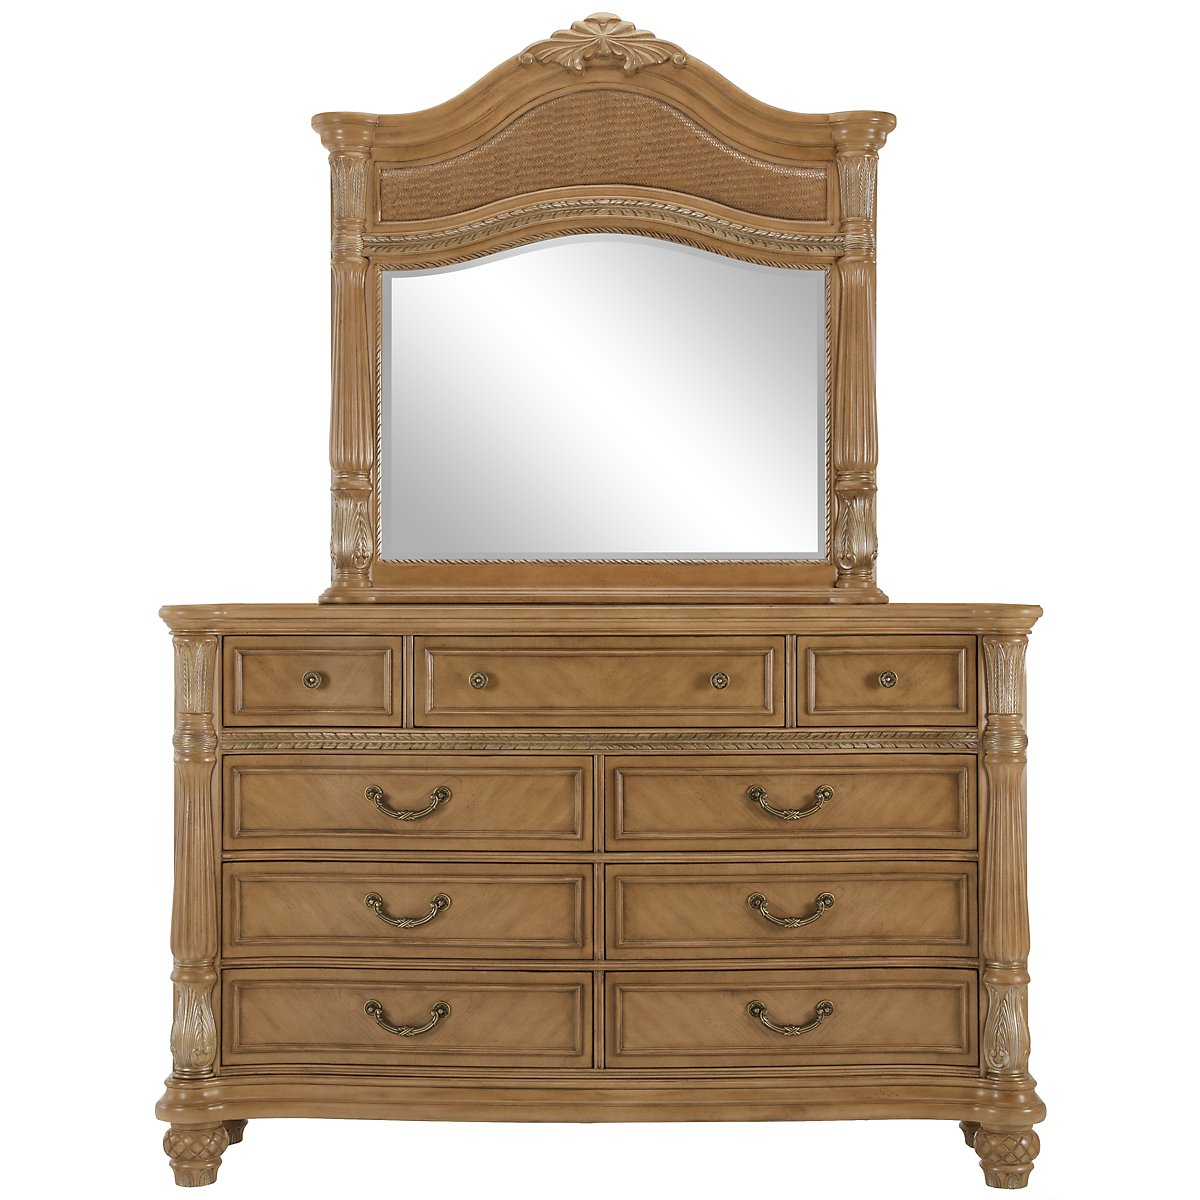 Tradewinds Light Tone Woven Dresser & Mirror